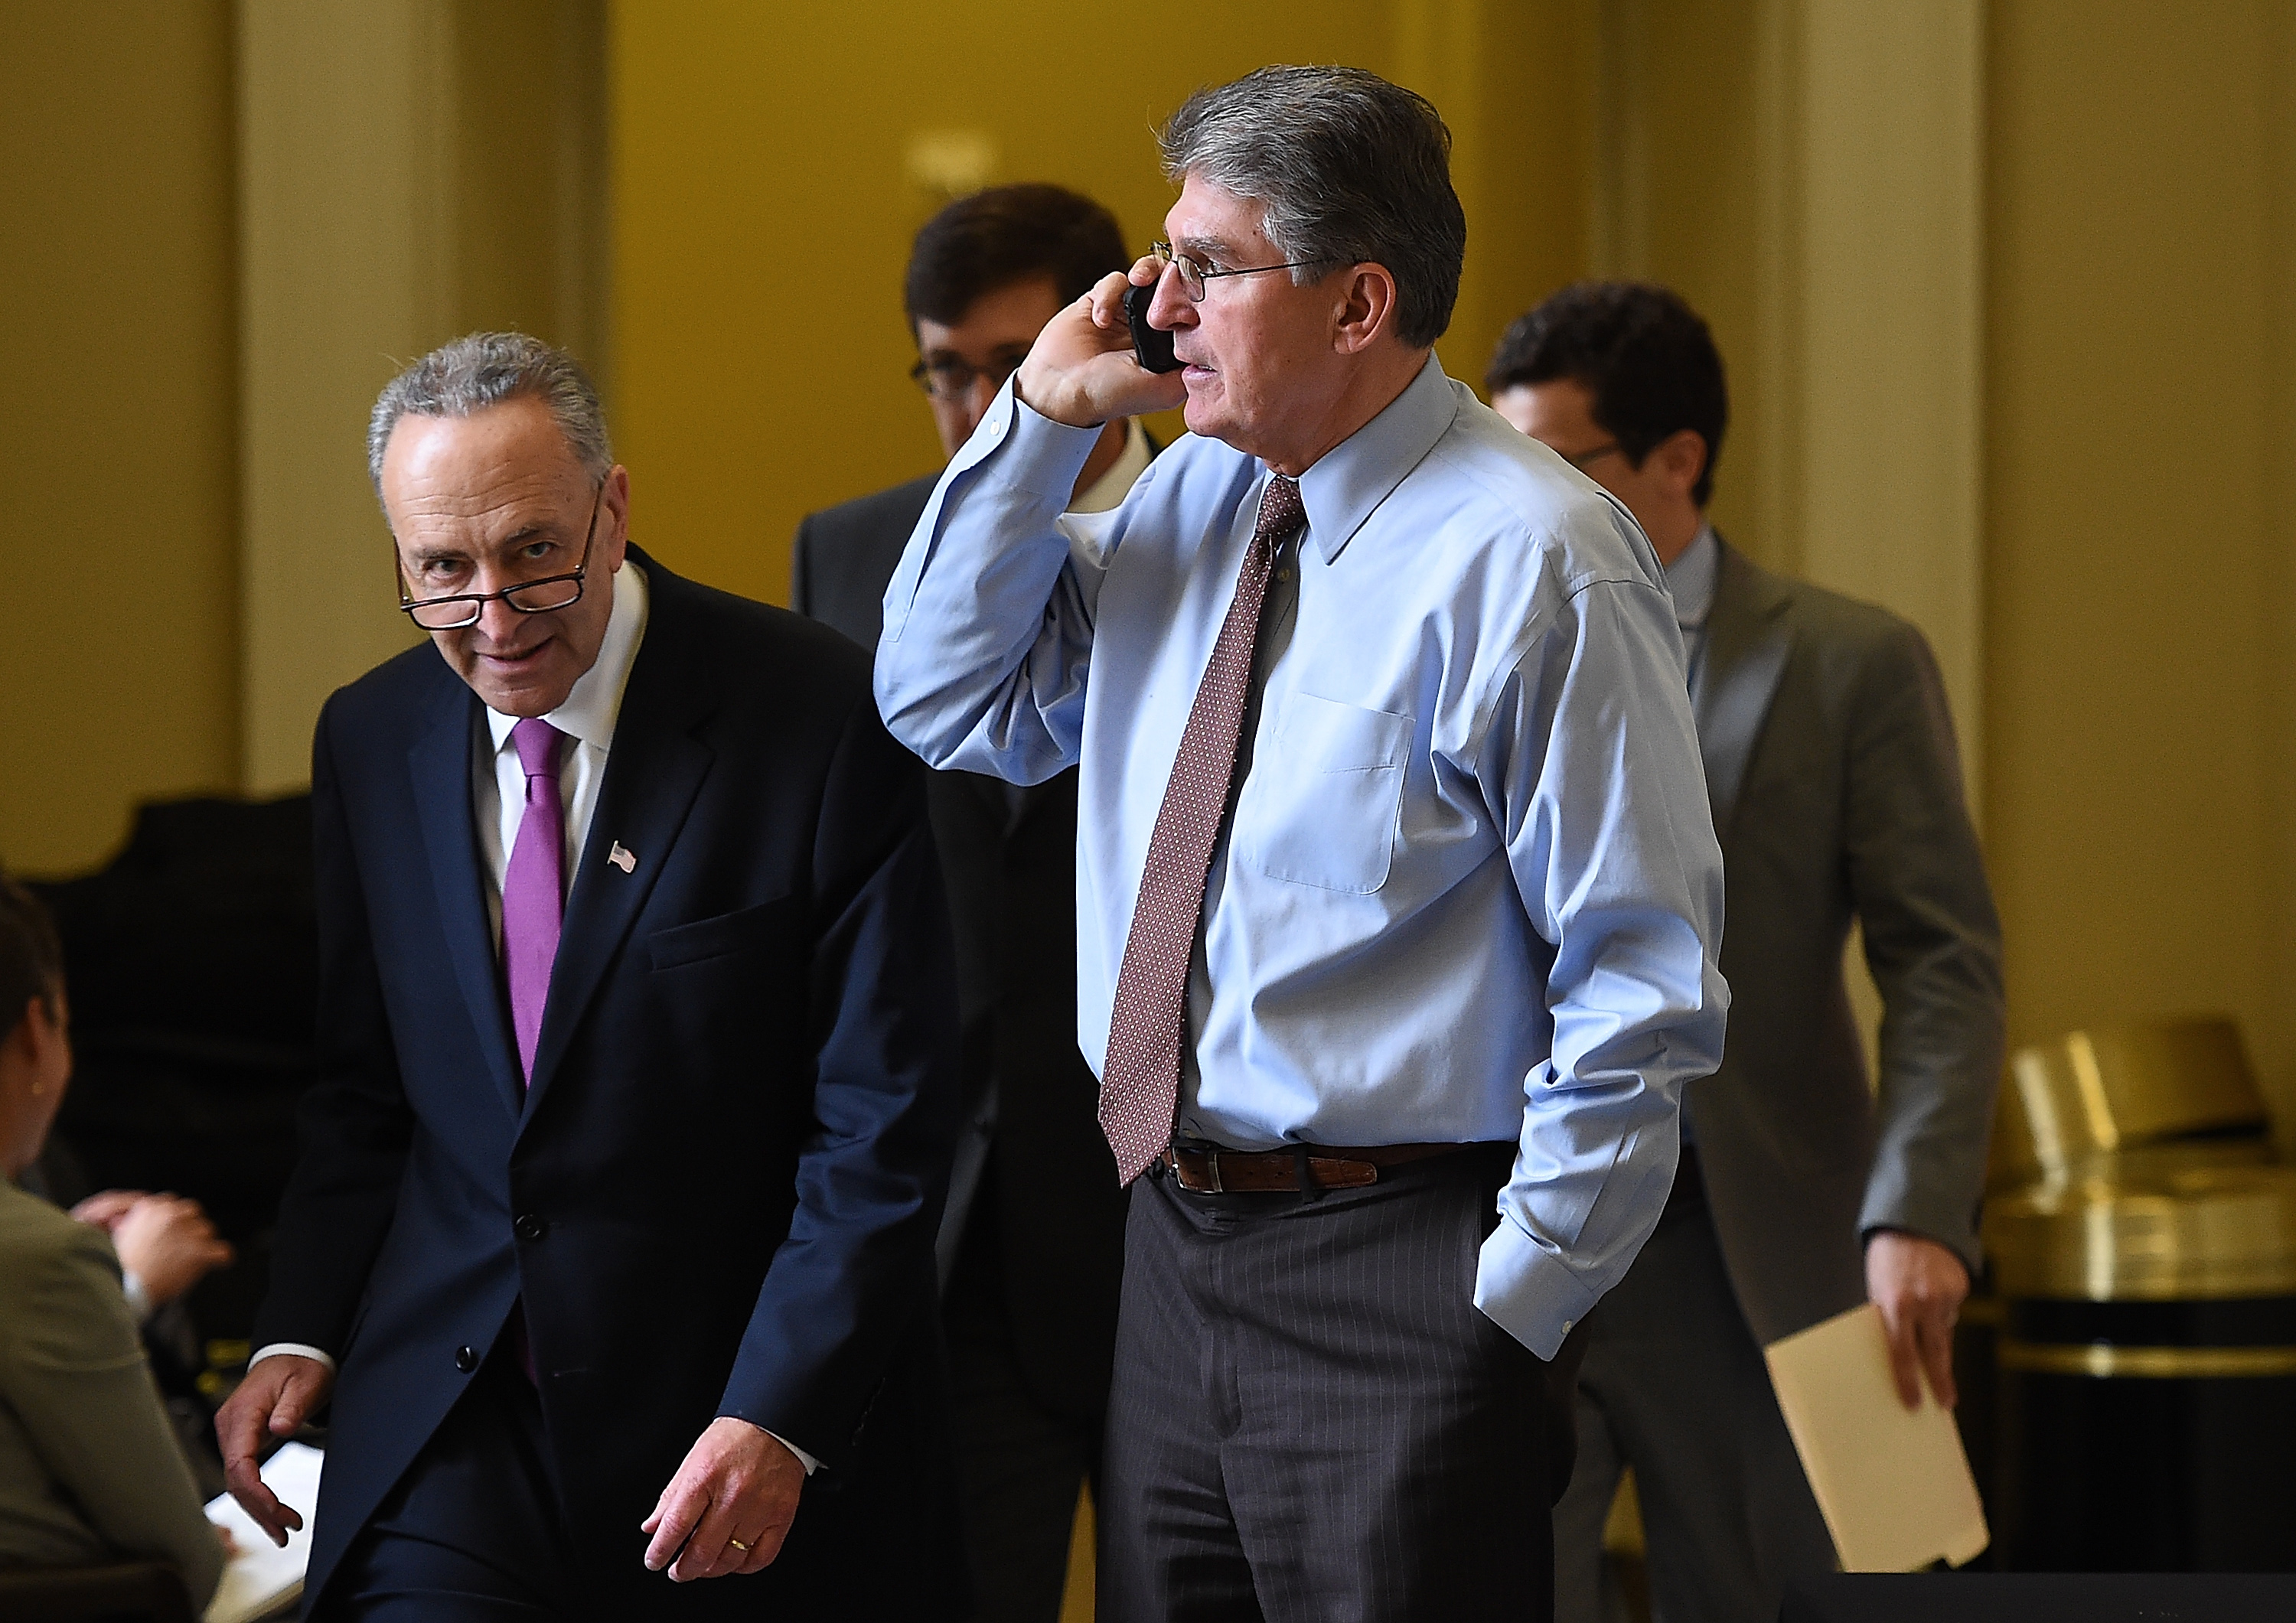 Sen. Charles Schumer (D-N.Y.) (left) passes Sen. Joe Manchin (D-W.Va.) (right) at the U.S. Capitol in Washington, DC. (Photo by Win McNamee/Getty Images)